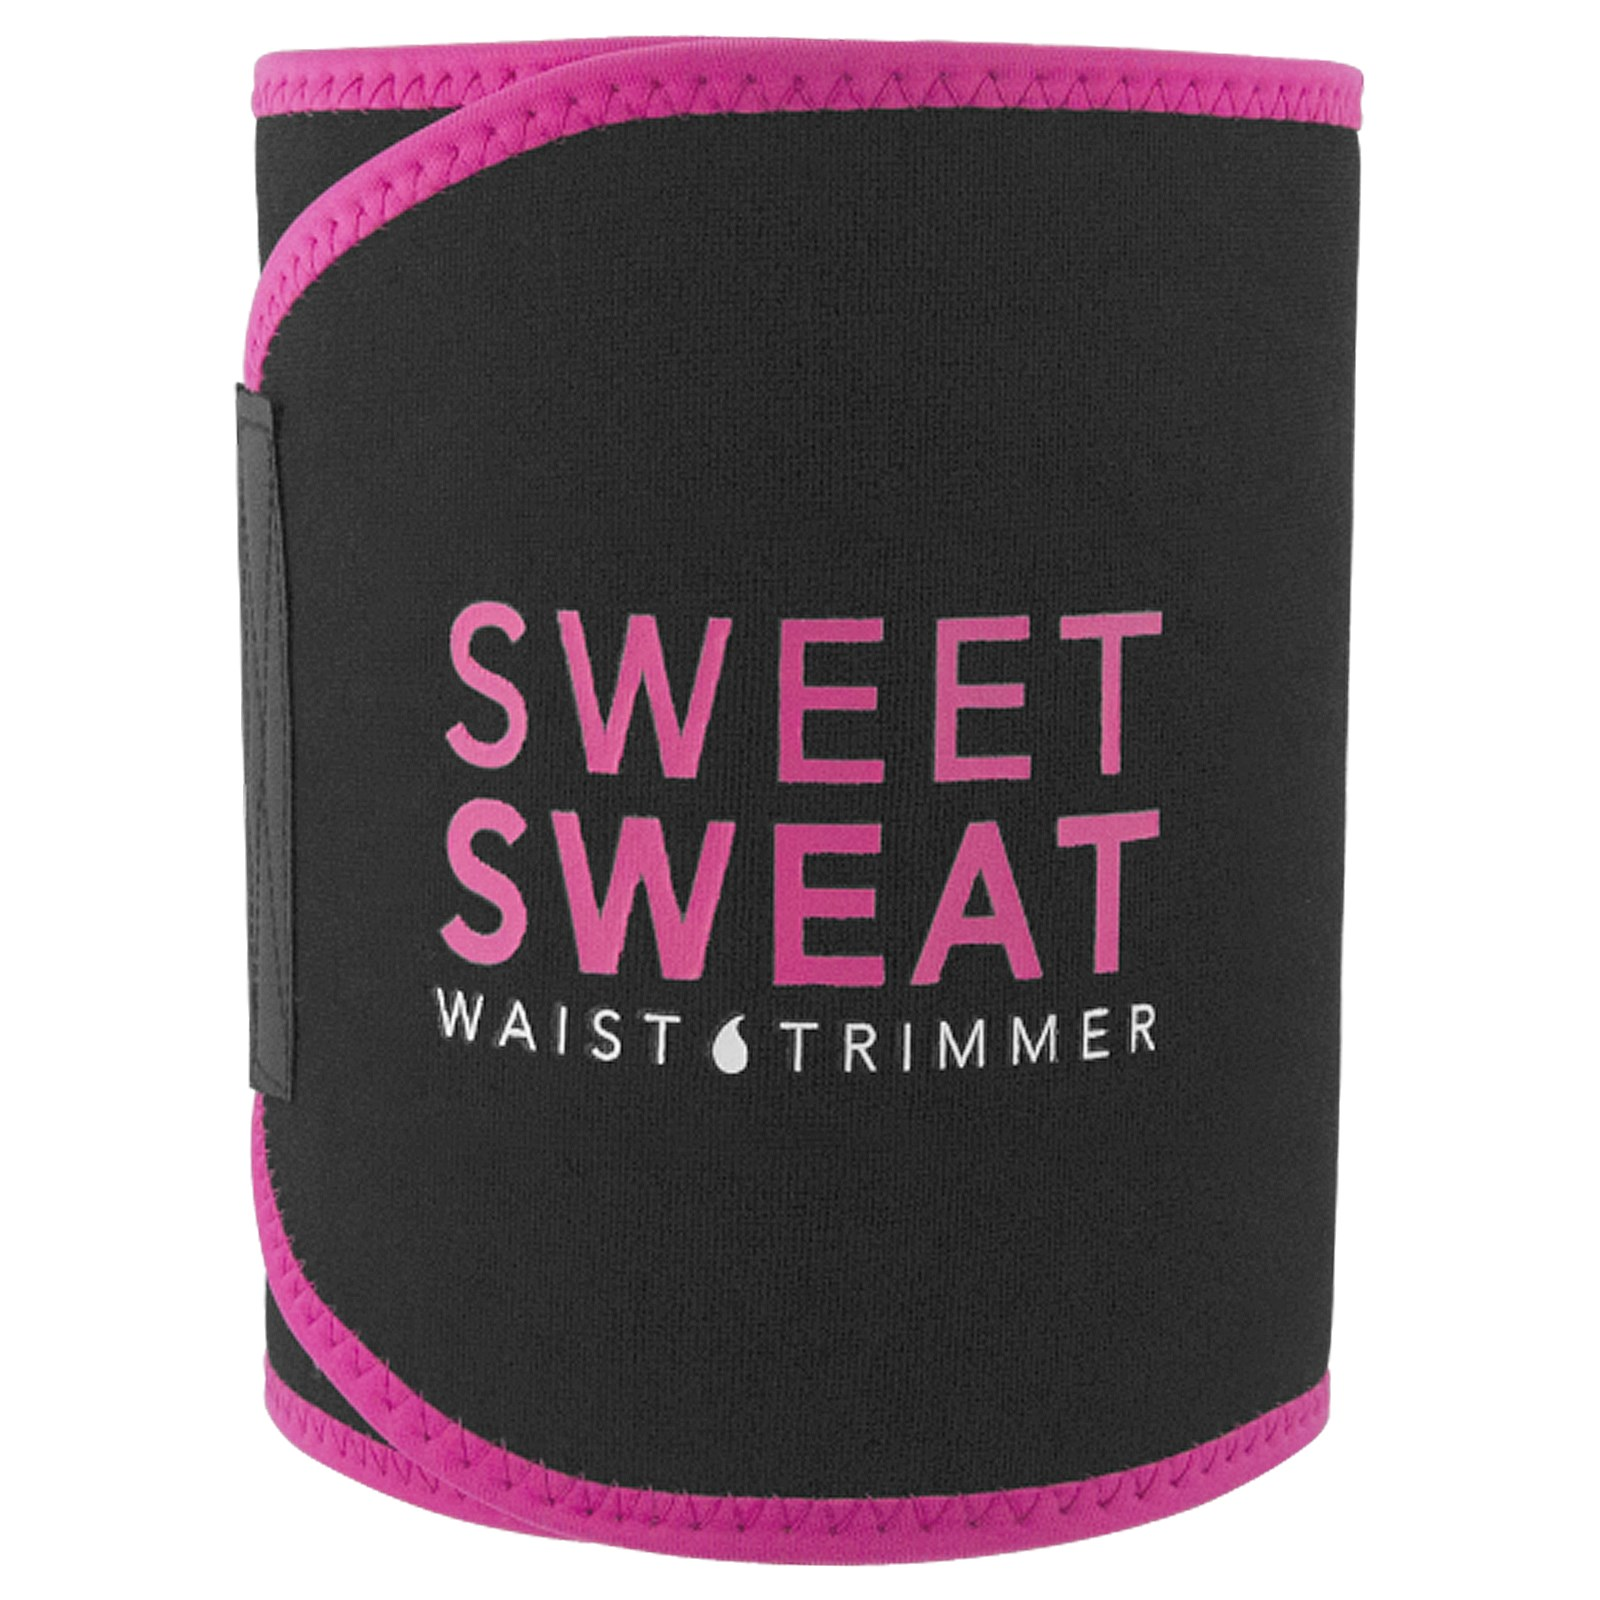 Sweet sweat in stores